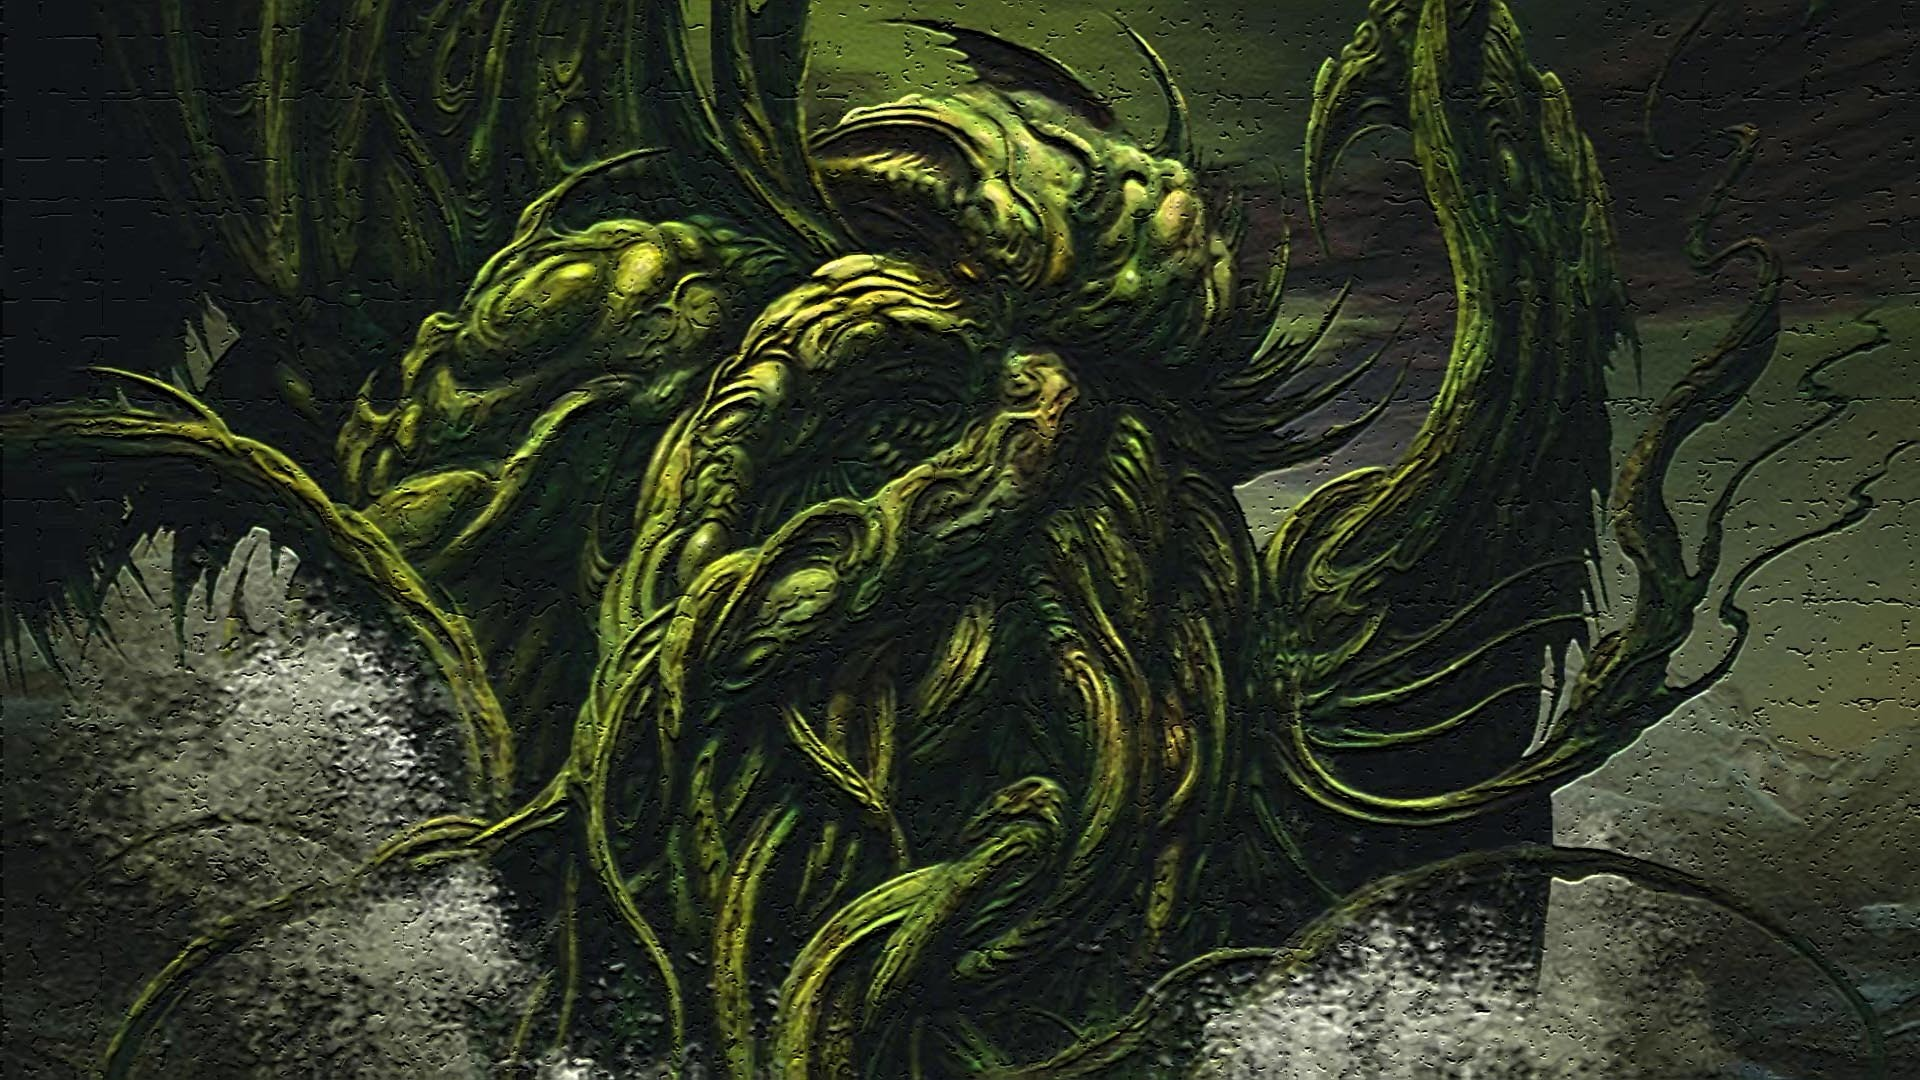 1920x1080 cthulhu wallpaper to download (Essex Walter )